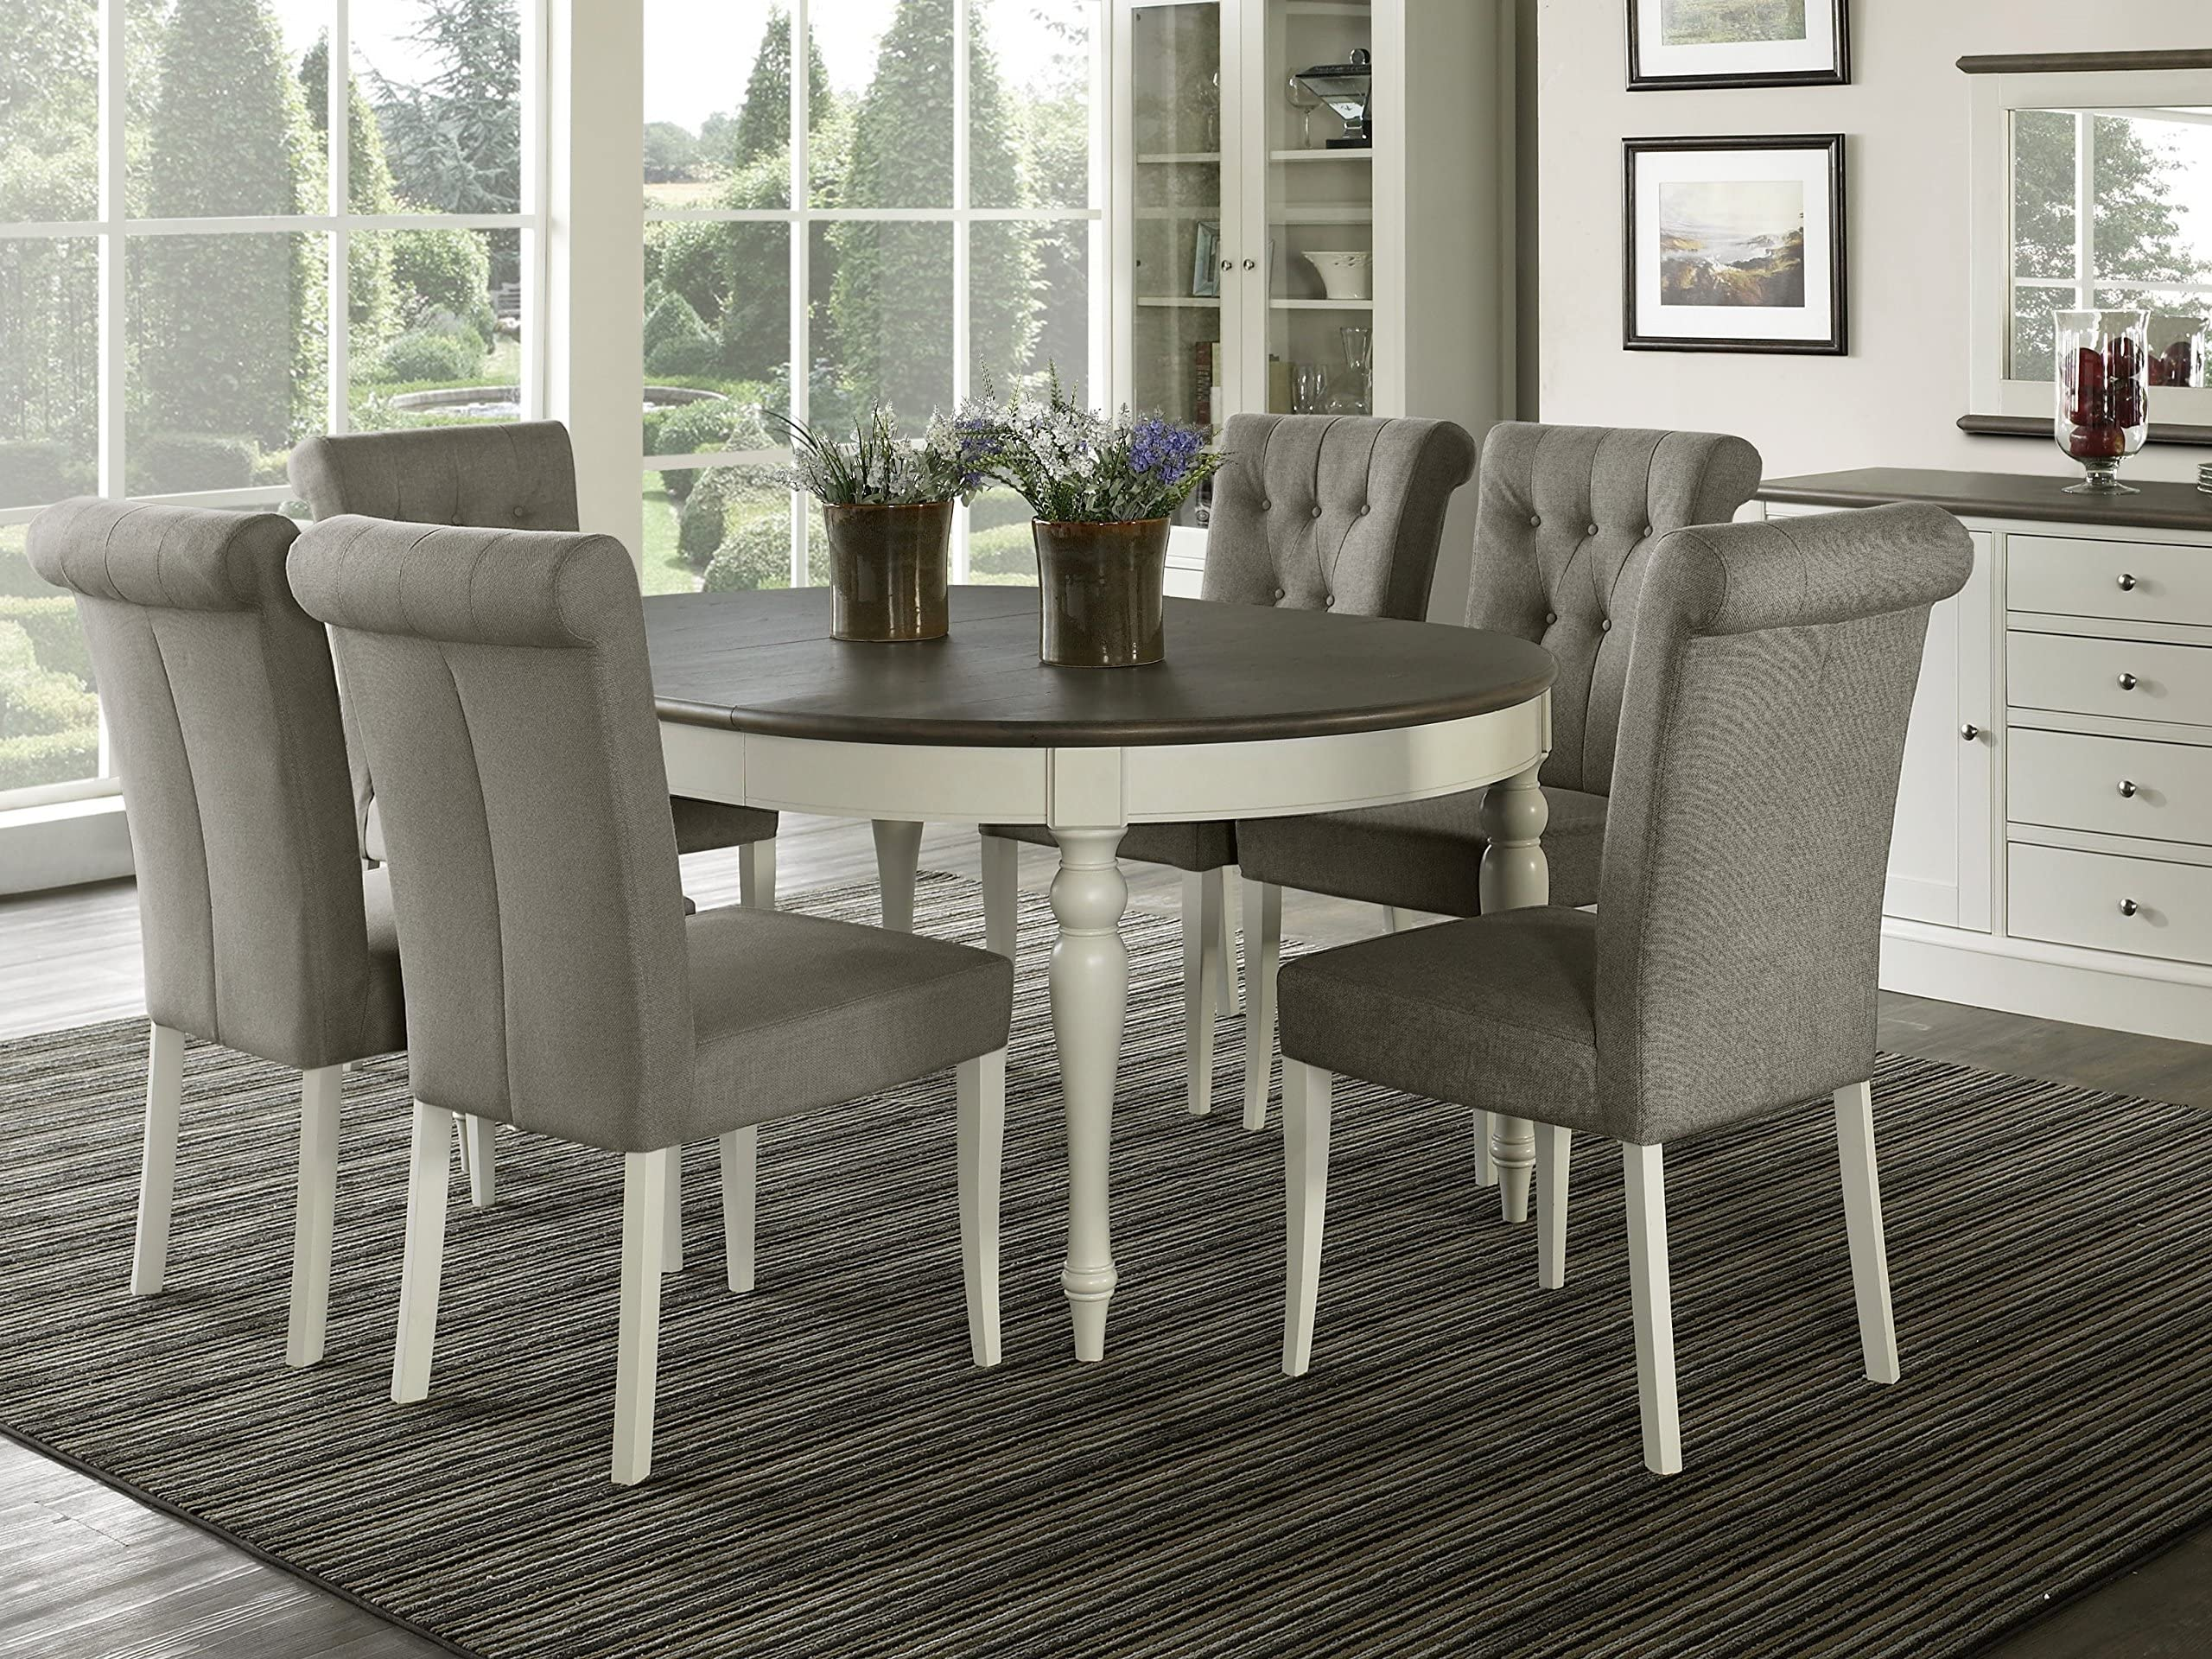 Vegas 7 Piece Round To Oval Extension Dining Table Set for 6 (Parsons Chairs)  sc 1 st  Amazon.com & Table \u0026 Chair Sets | Amazon.com